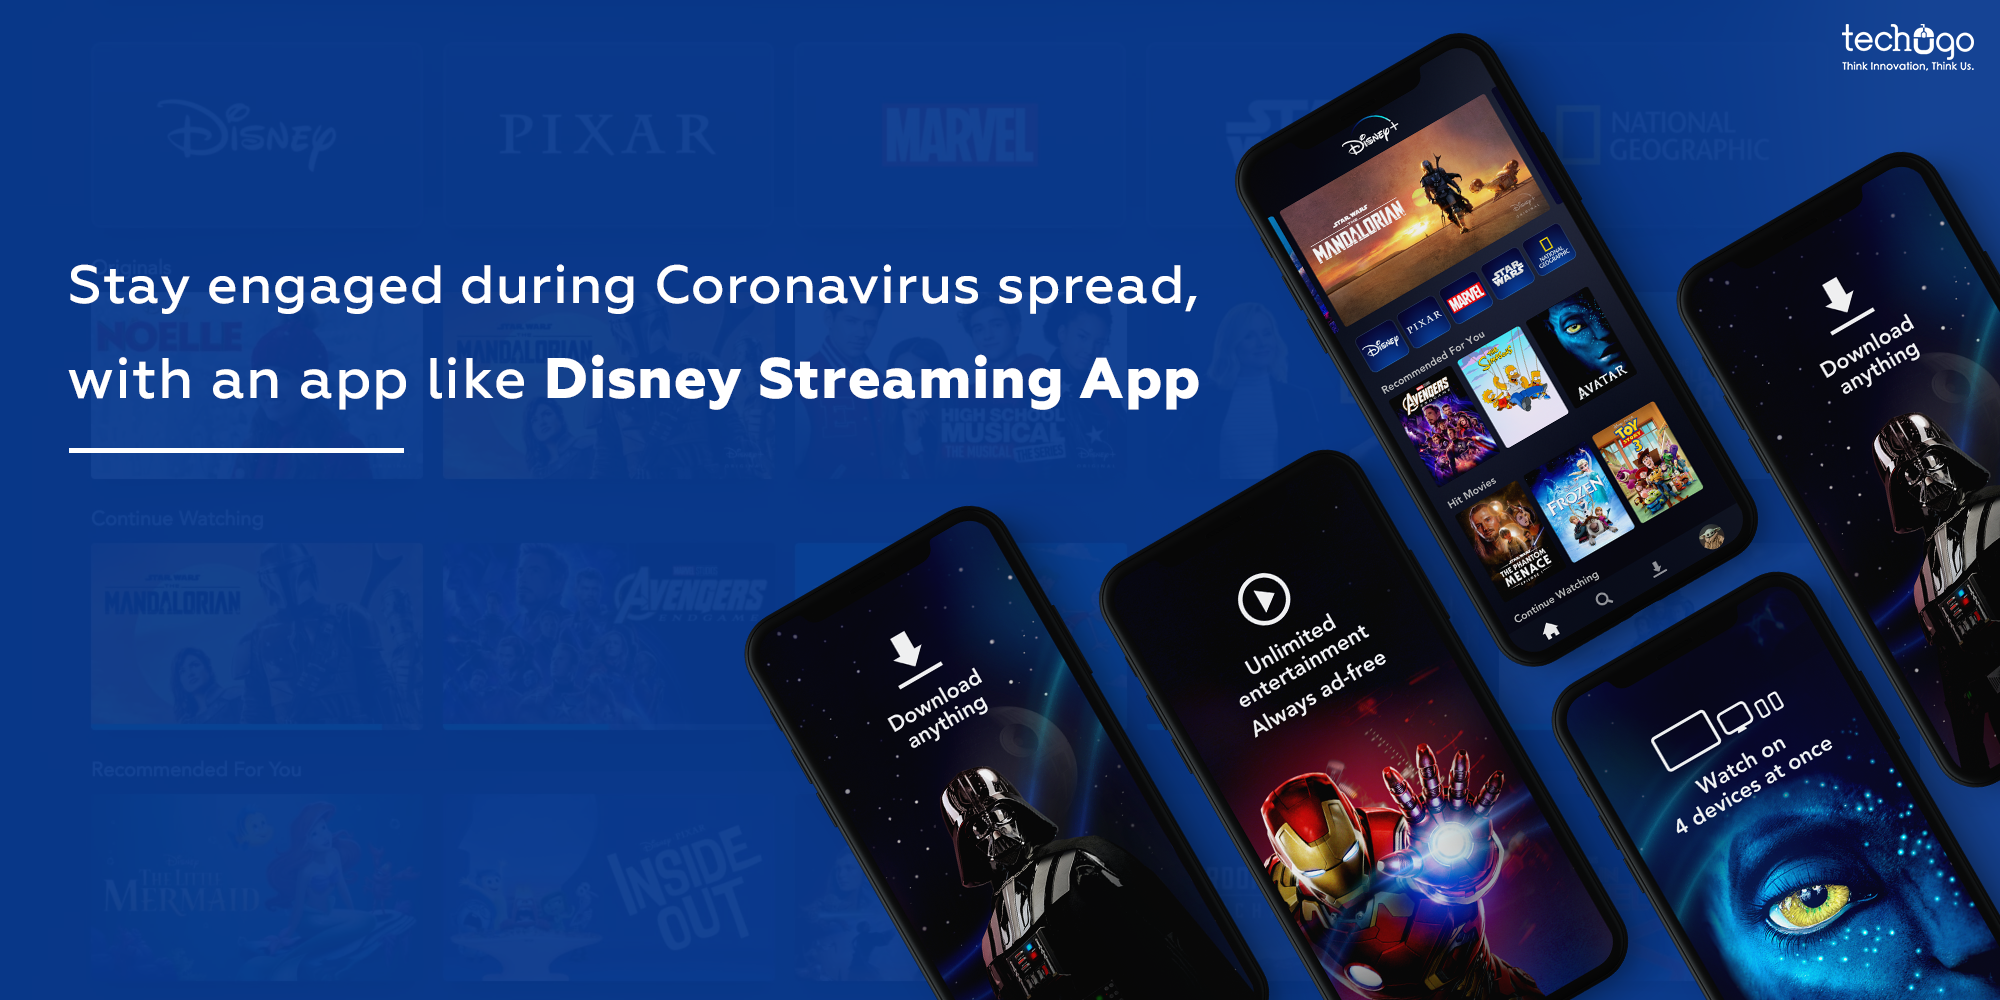 Stay Engaged During Coronavirus Spread, With An App Like Disney Streaming App